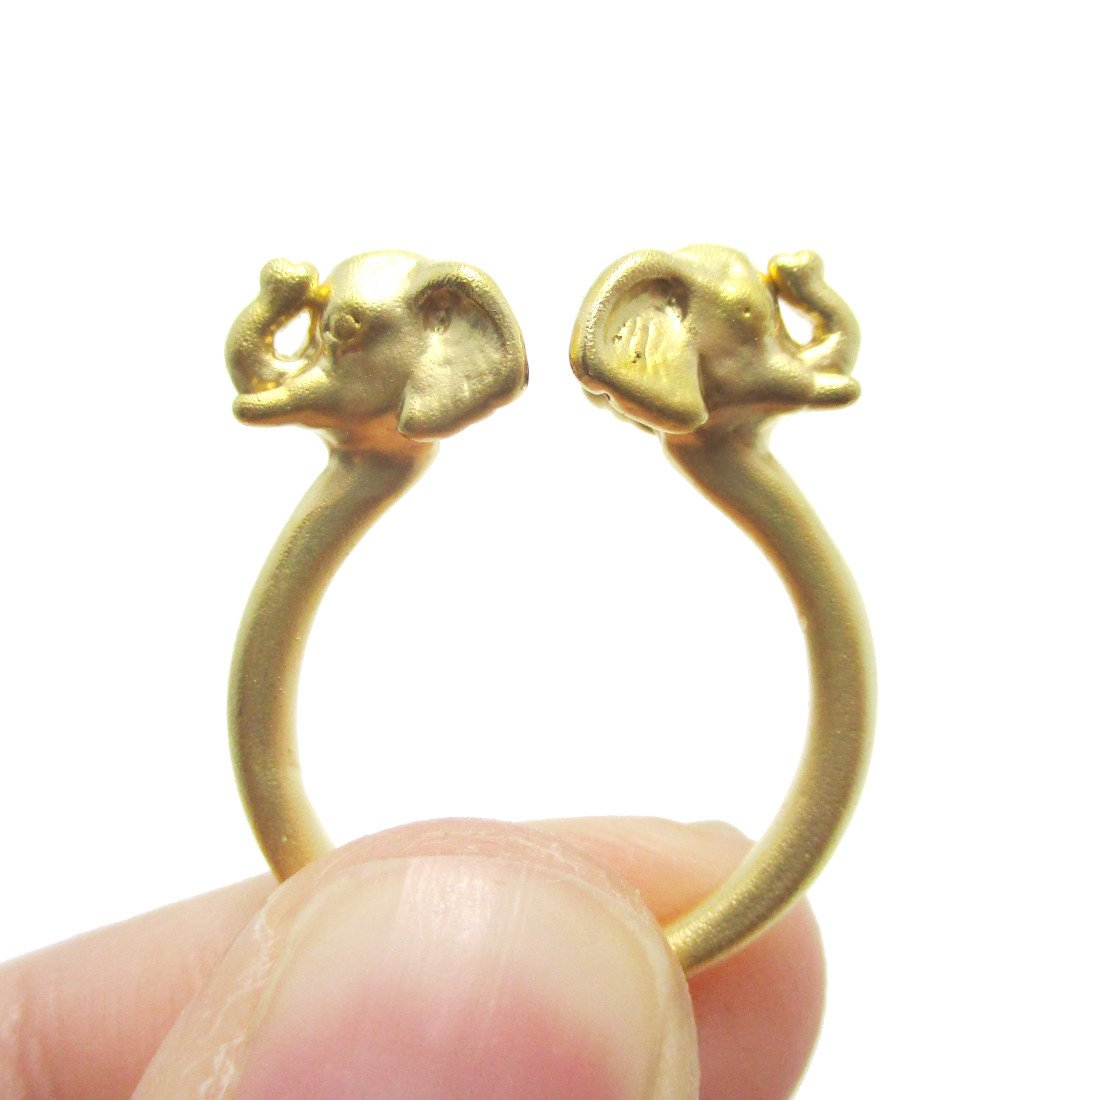 Double Elephant Head Shaped Sleek Animal Ring in Gold